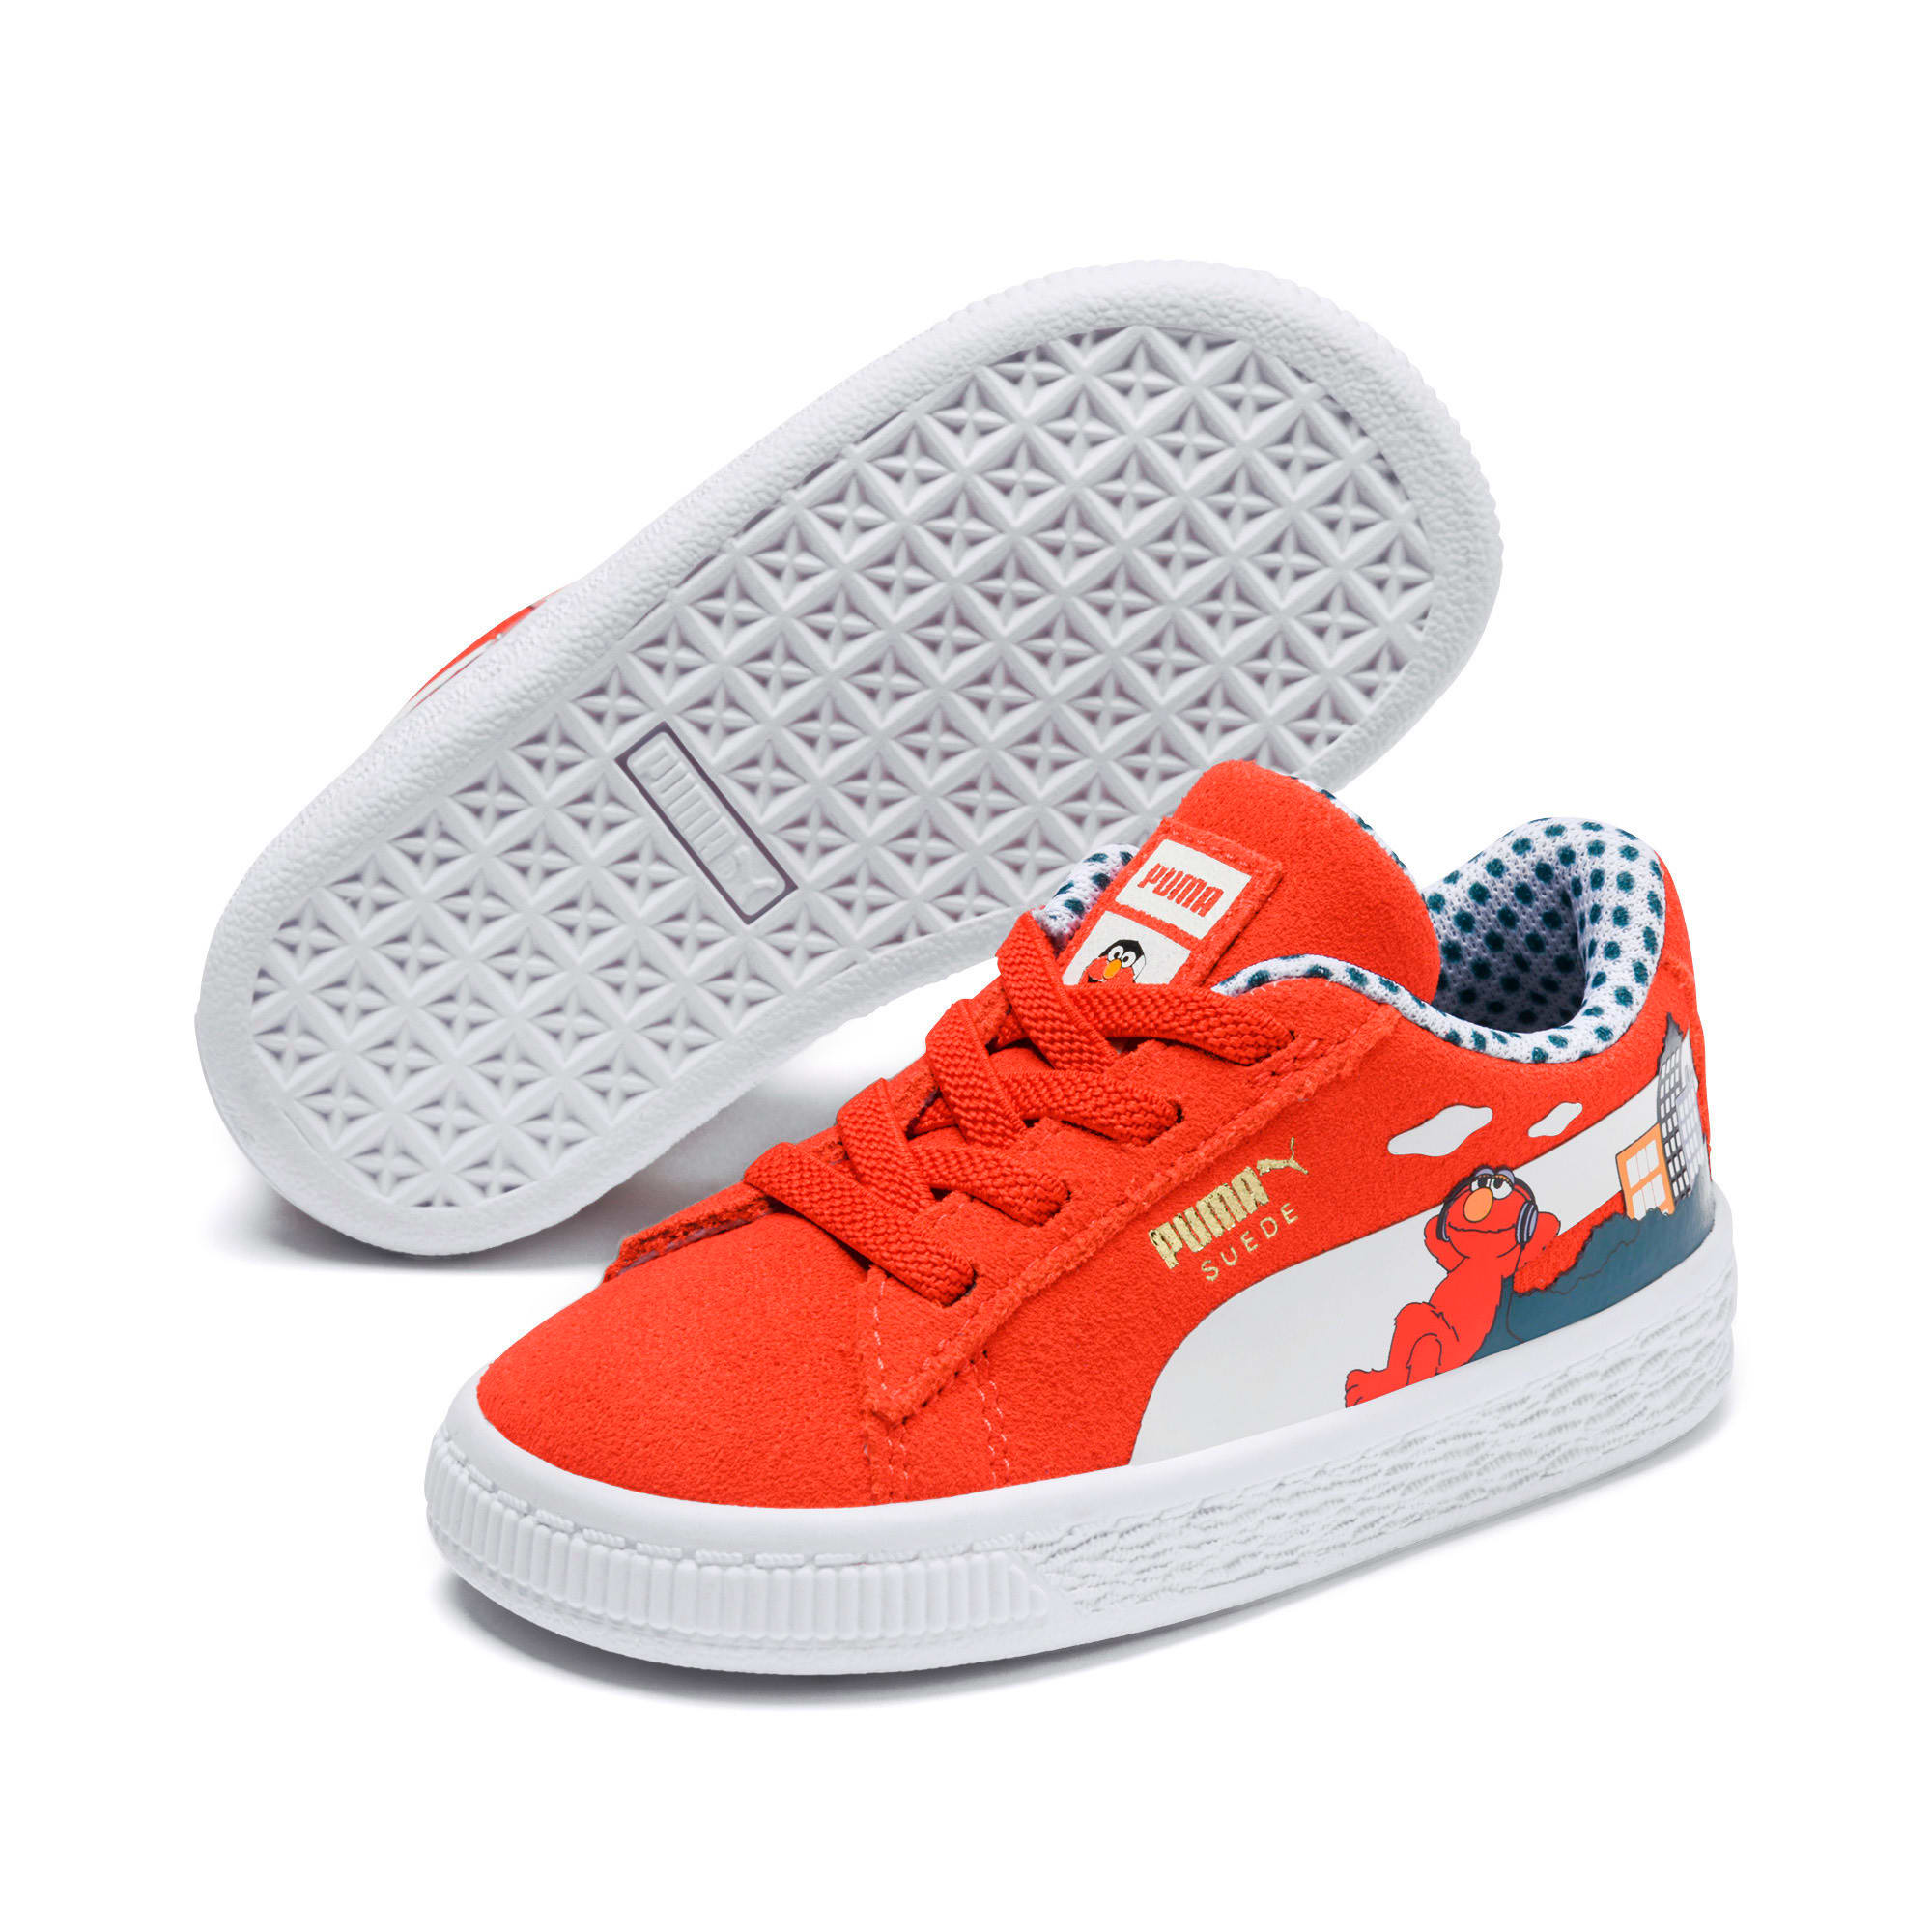 Thumbnail 2 of Sesame Street Suede Babies' Trainers, Cherry Tomato-Puma White, medium